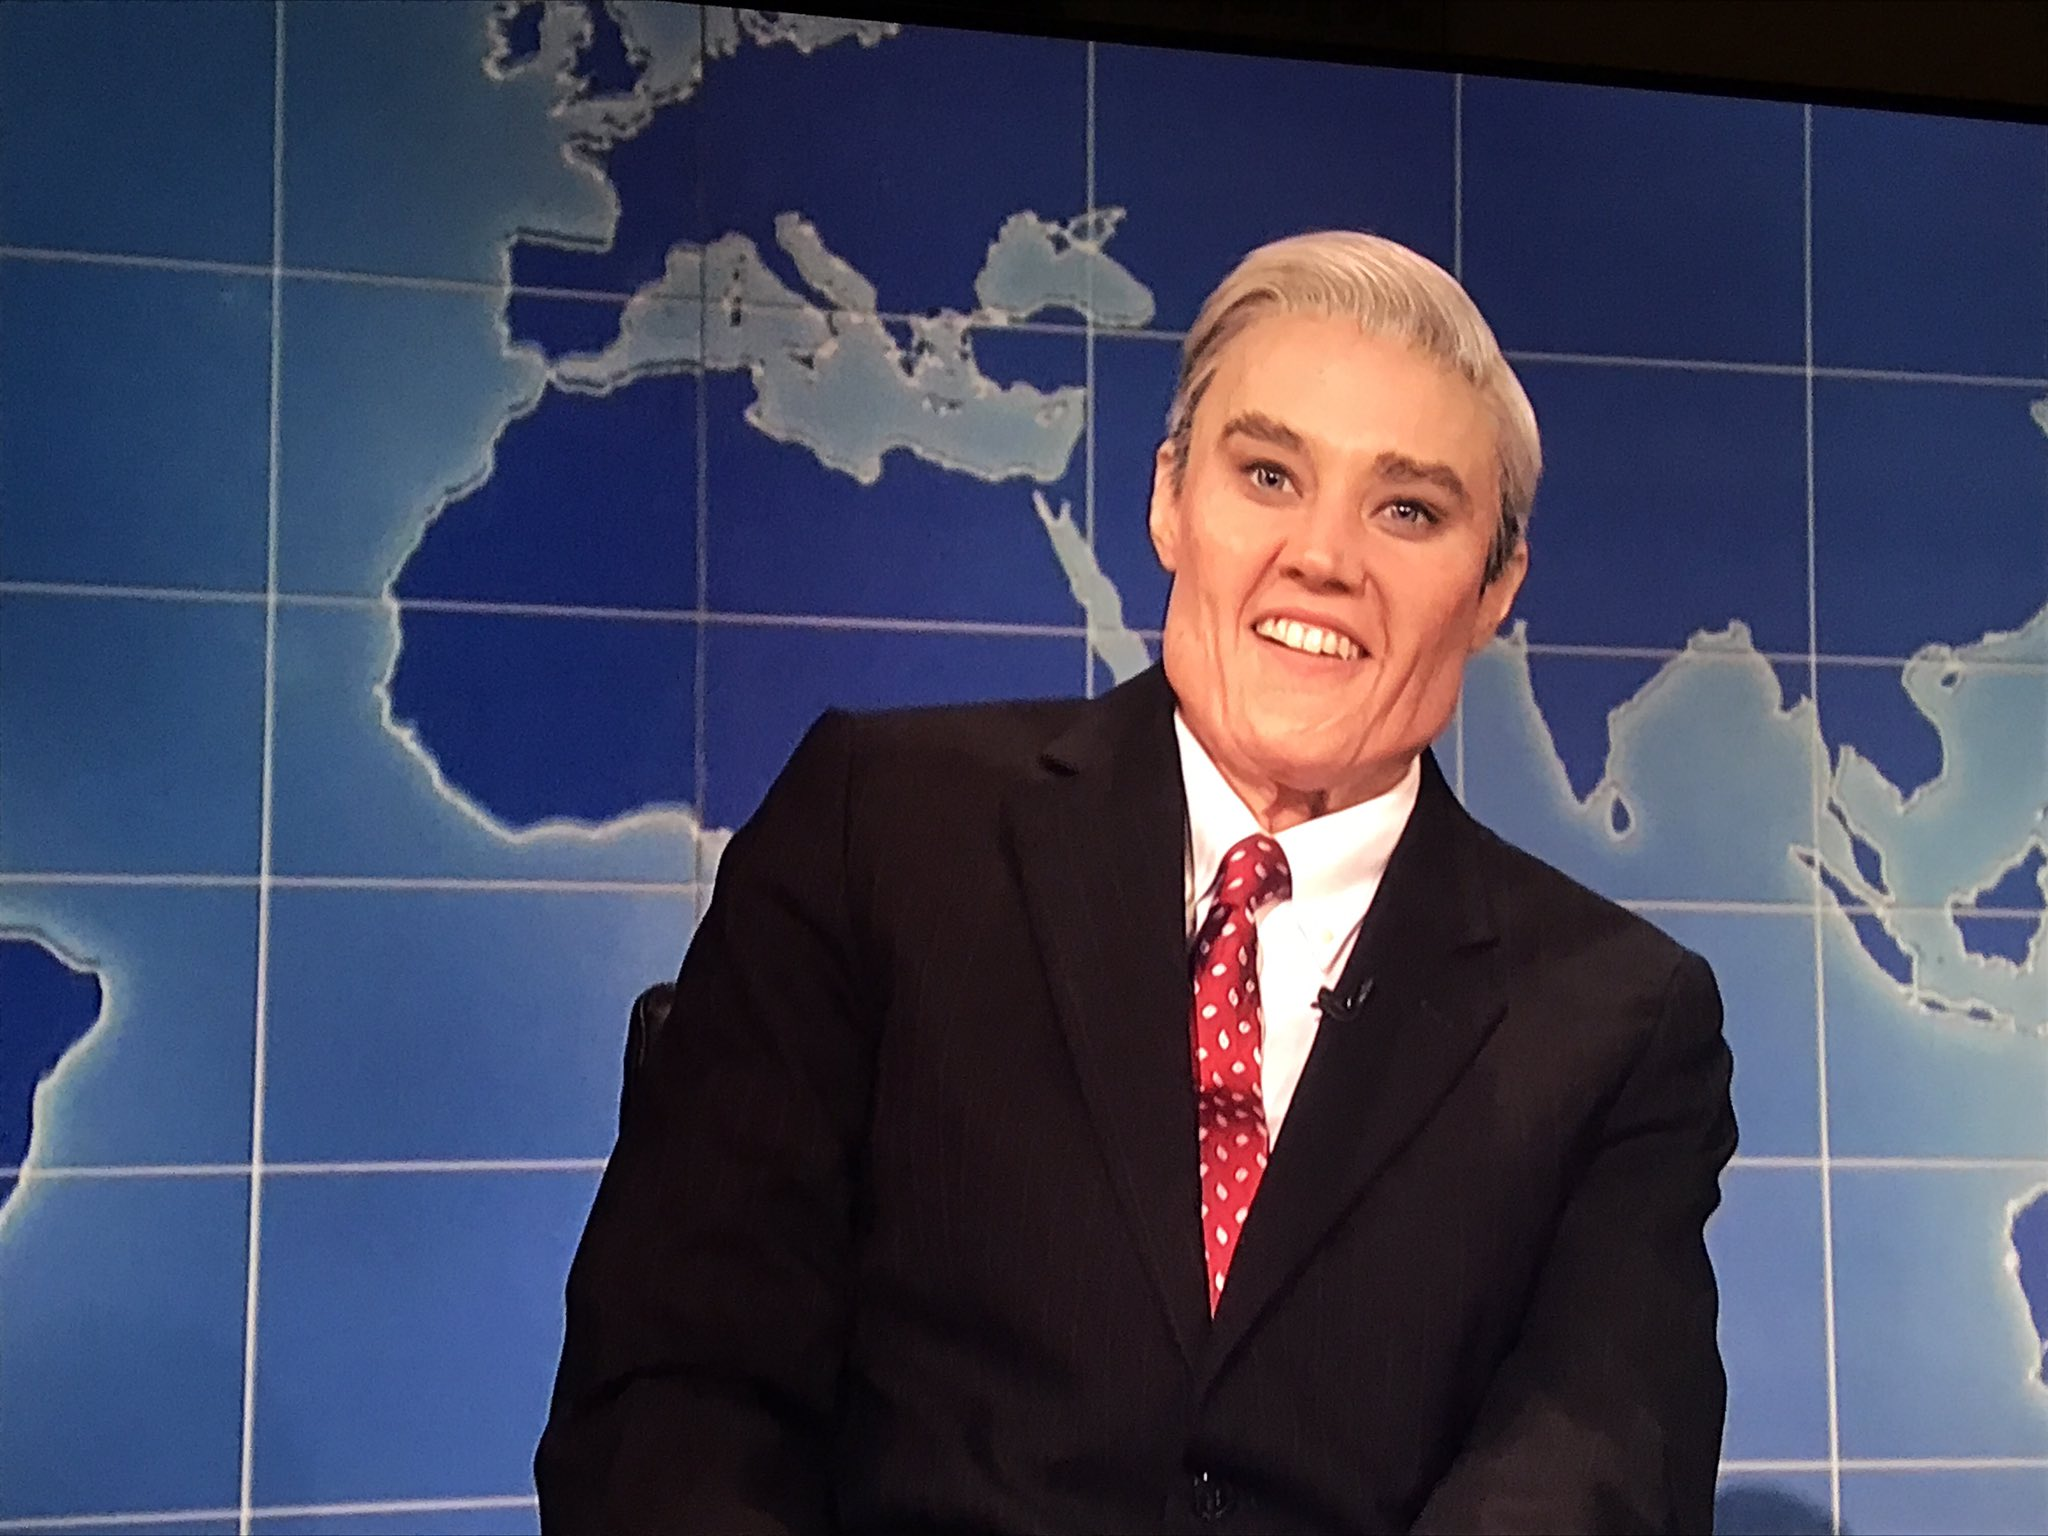 Add Robert Mueller to Kate McKinnon's list of 'SNL' characters. https://t.co/O4I6eR32Gm